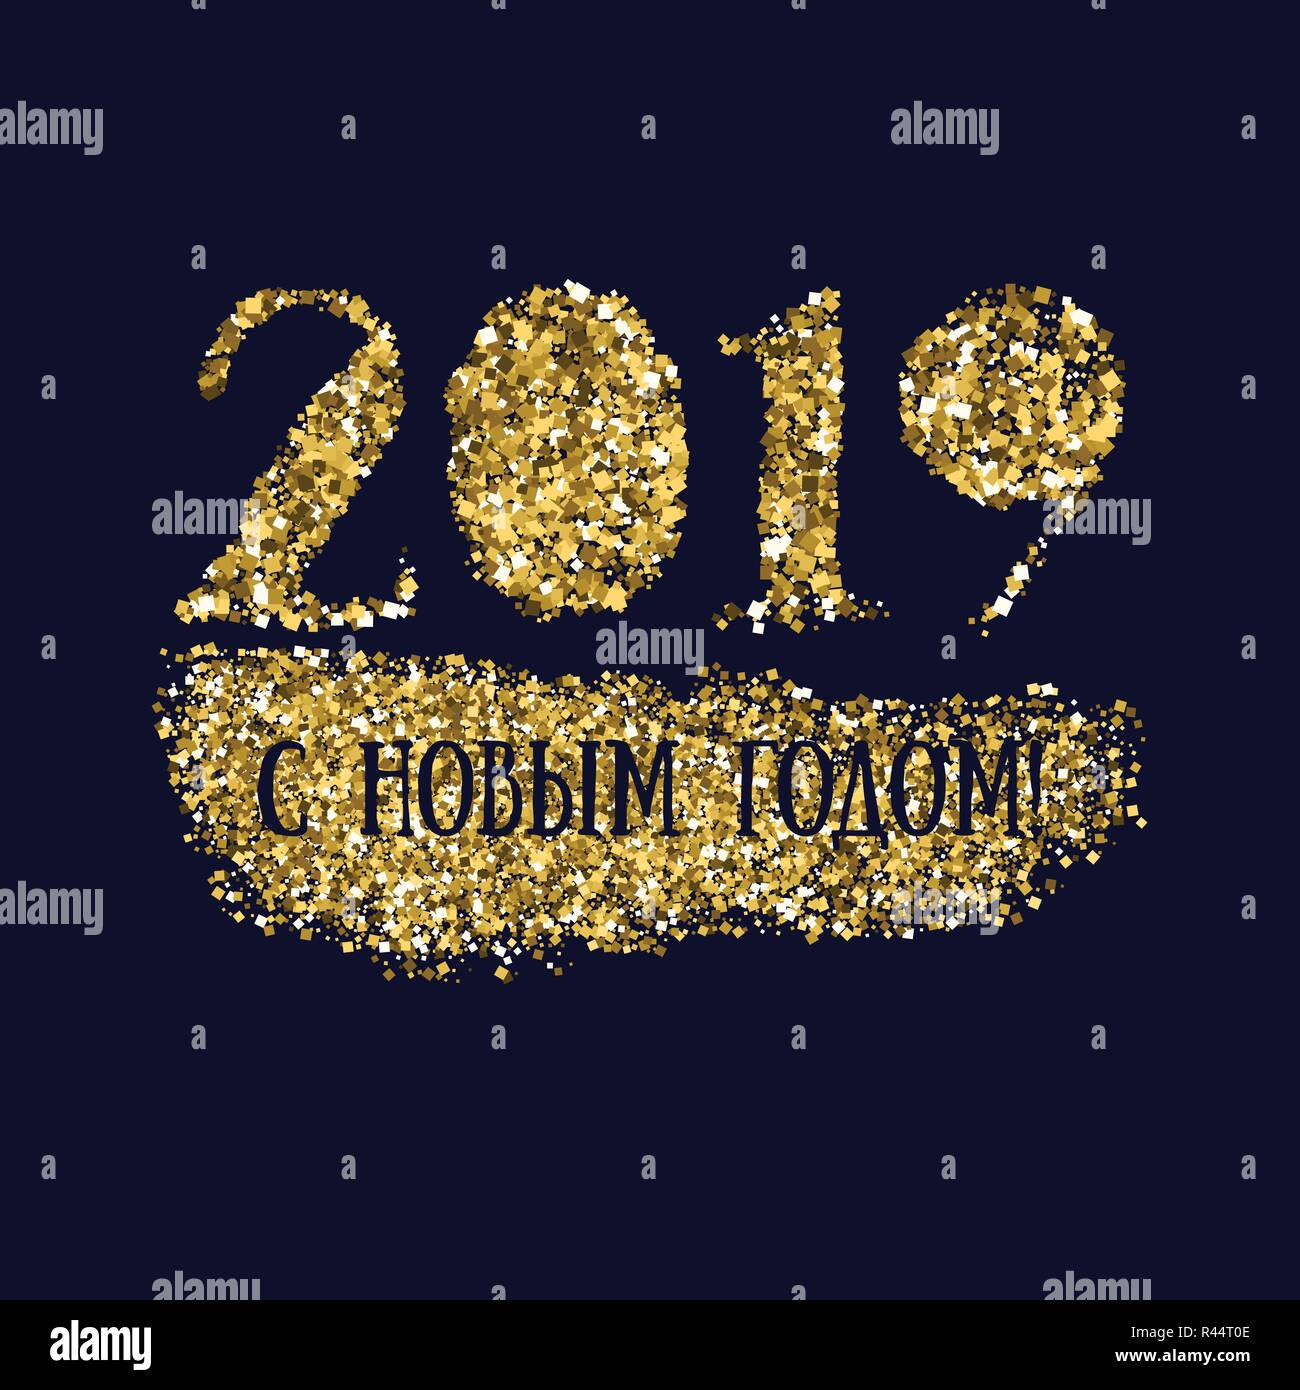 golden glitter happy new year 2019 greeting card in russian language with shiny glitter splash and custom golden lettering